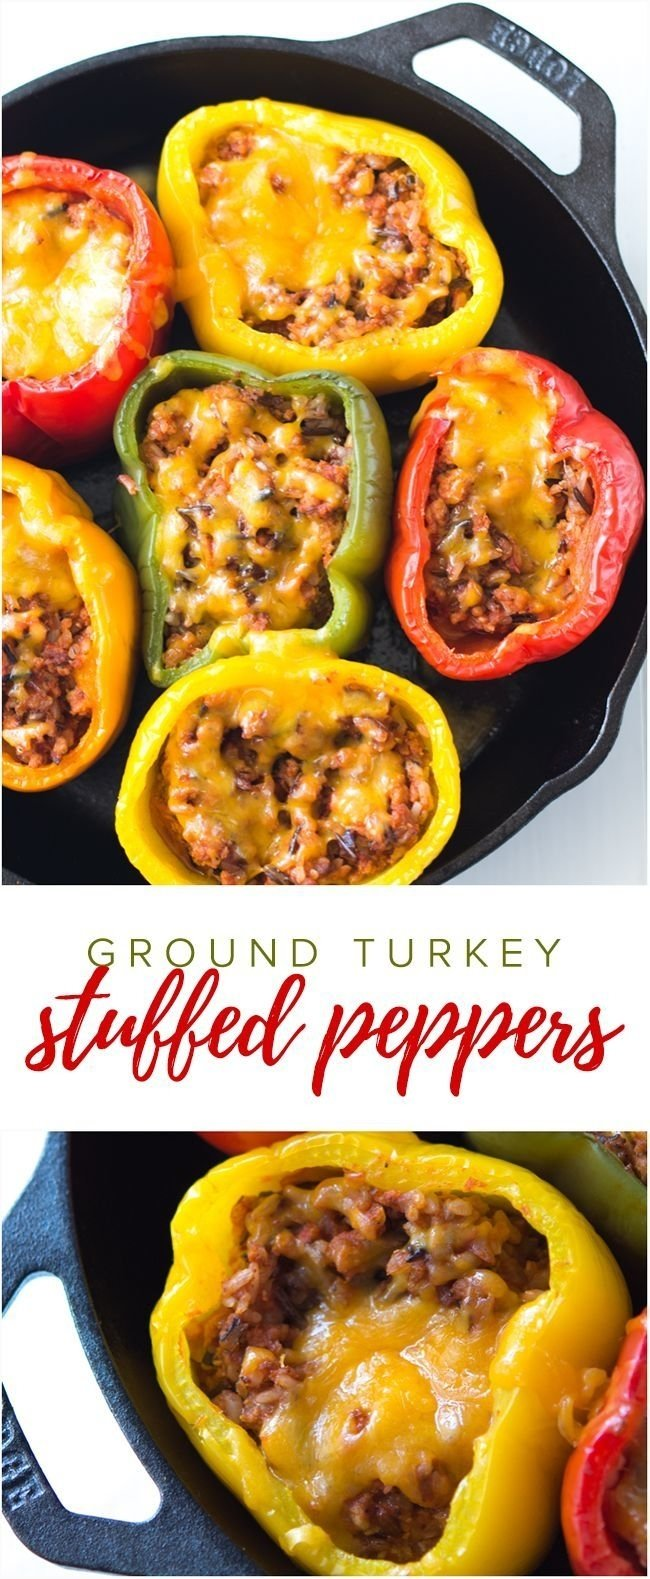 10 Fabulous Easy Healthy Family Dinner Ideas 488 best healthy living recipes and tips images on pinterest 2 2021